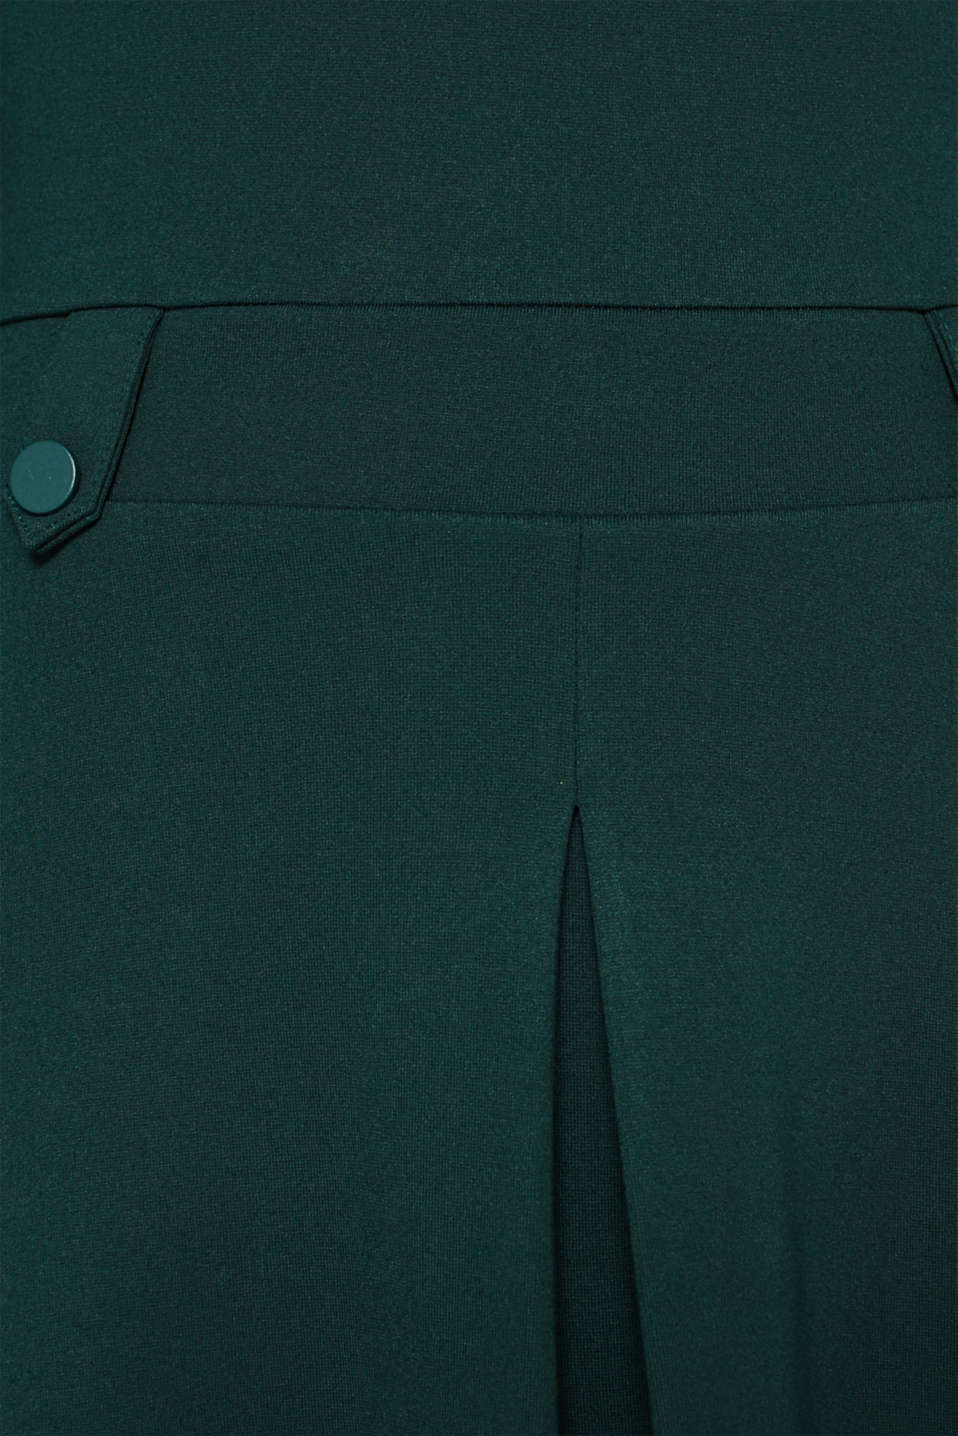 Flared dress made of stretch jersey, DARK TEAL GREEN, detail image number 4